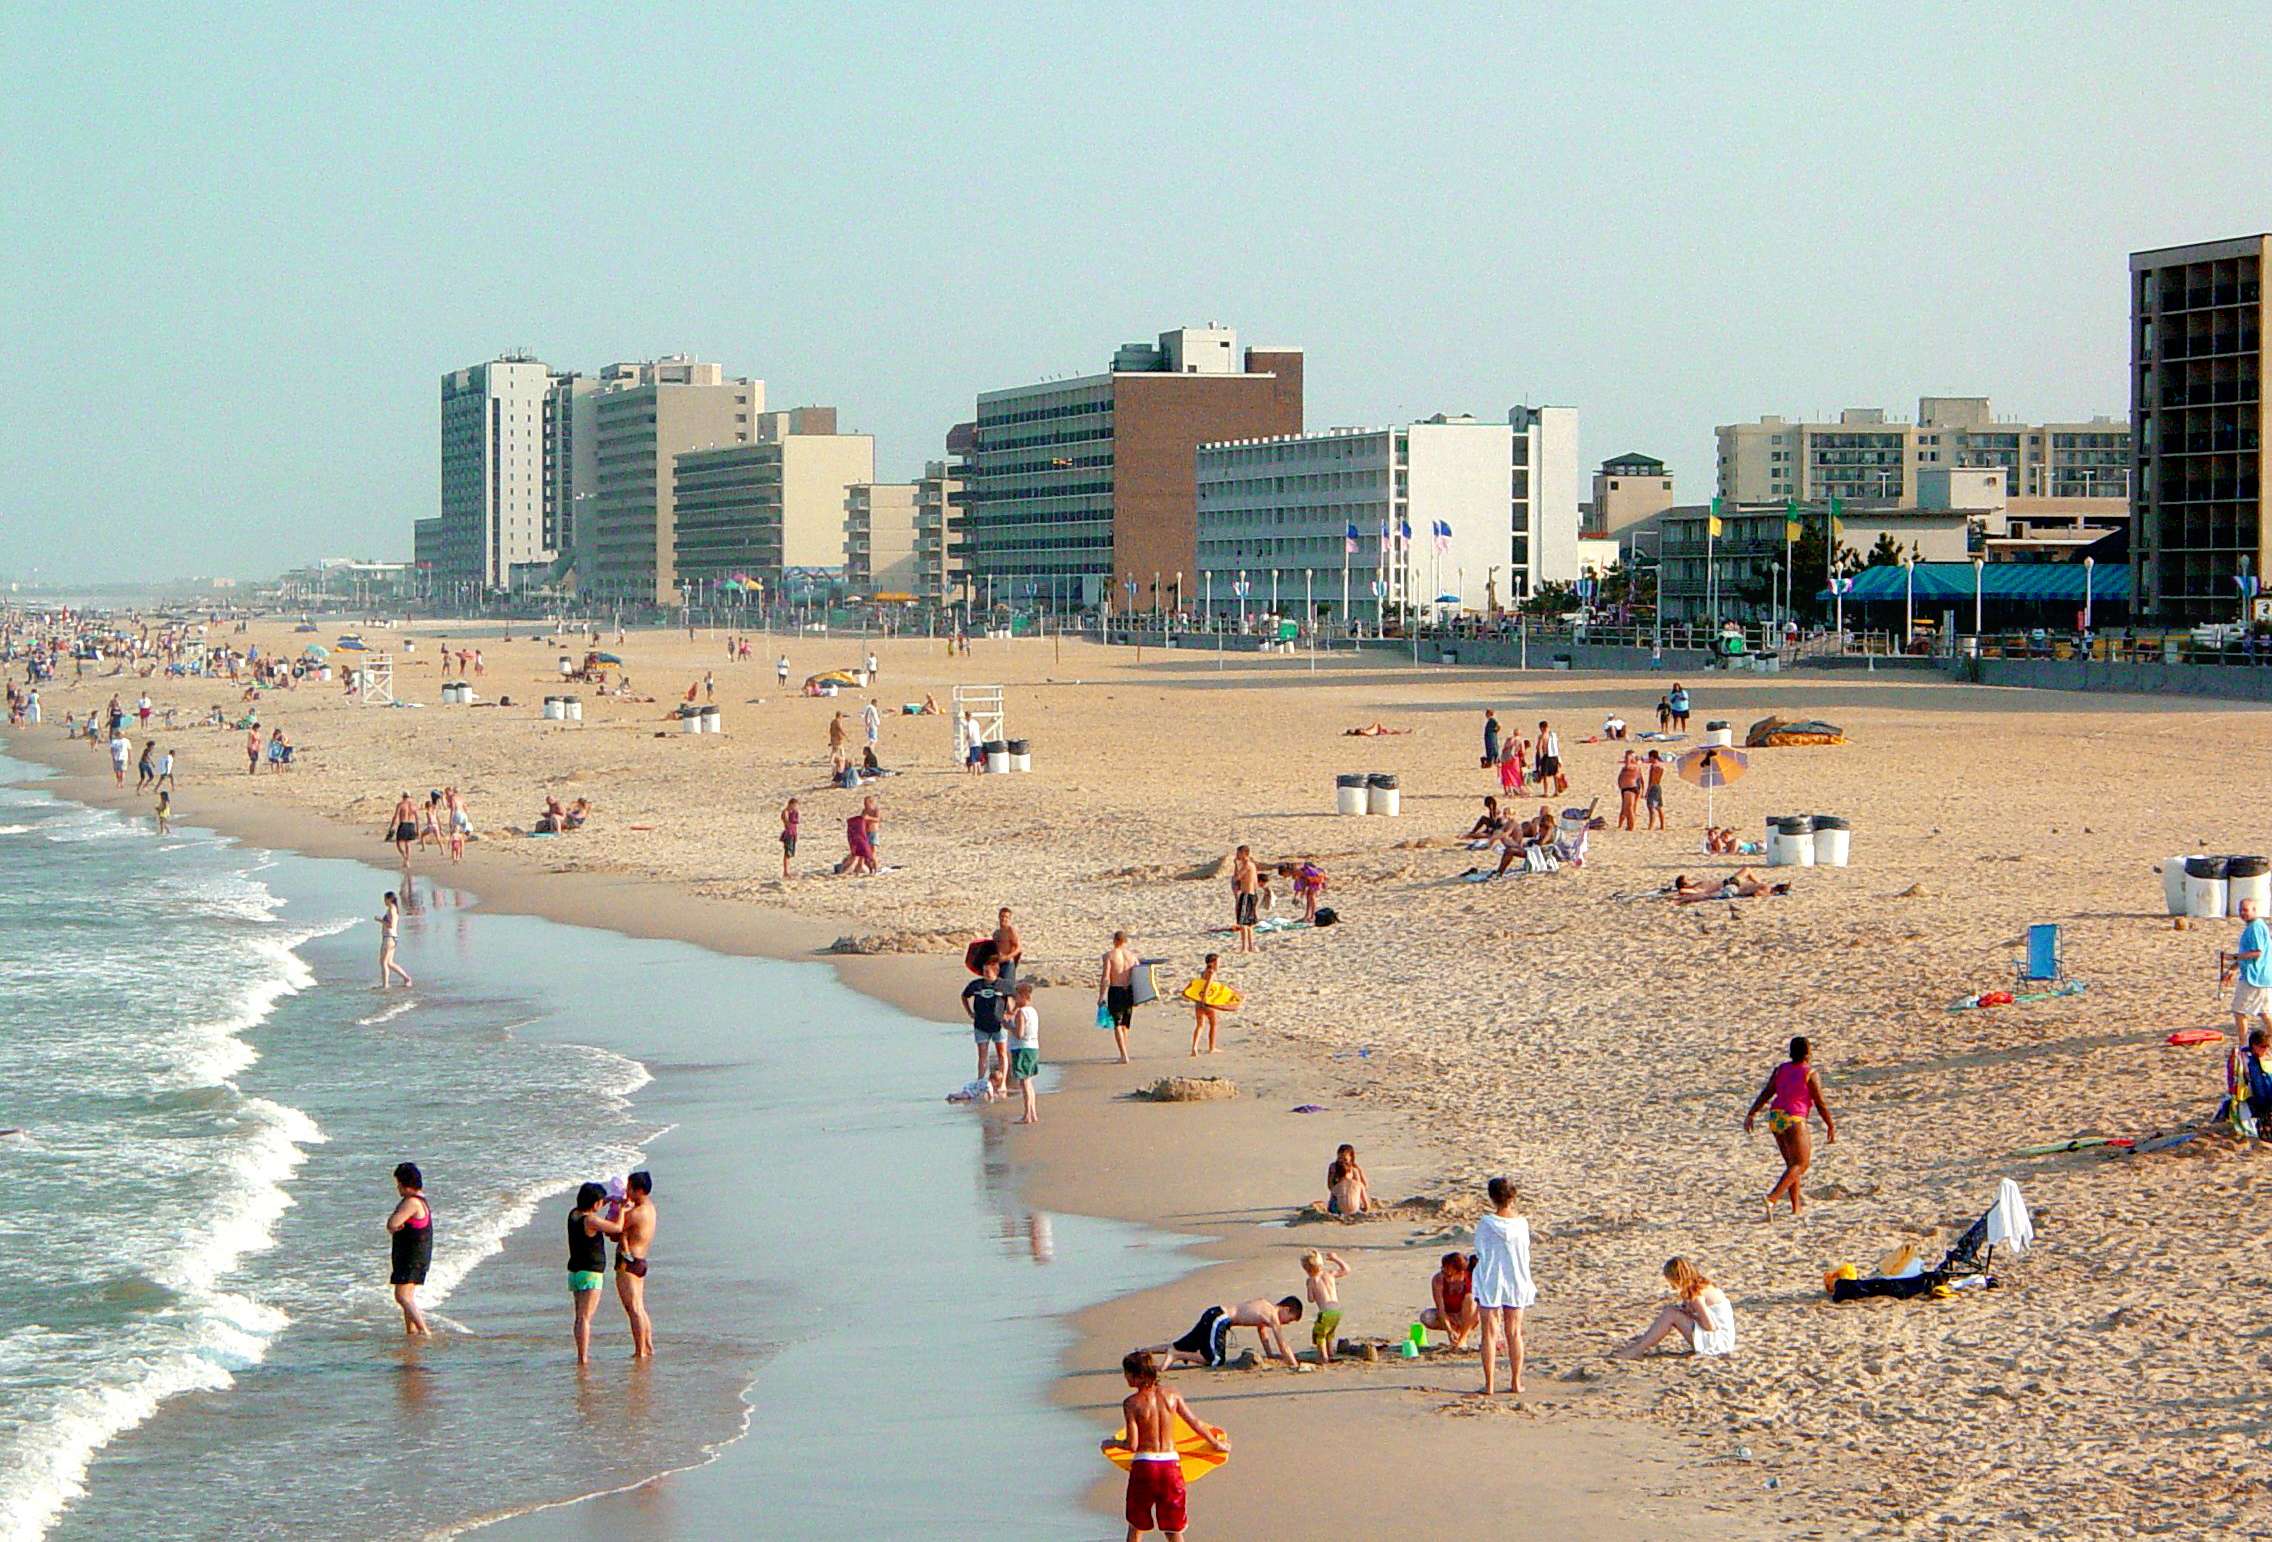 Northam: Virginia Beach beaches can open for Memorial Day weekend